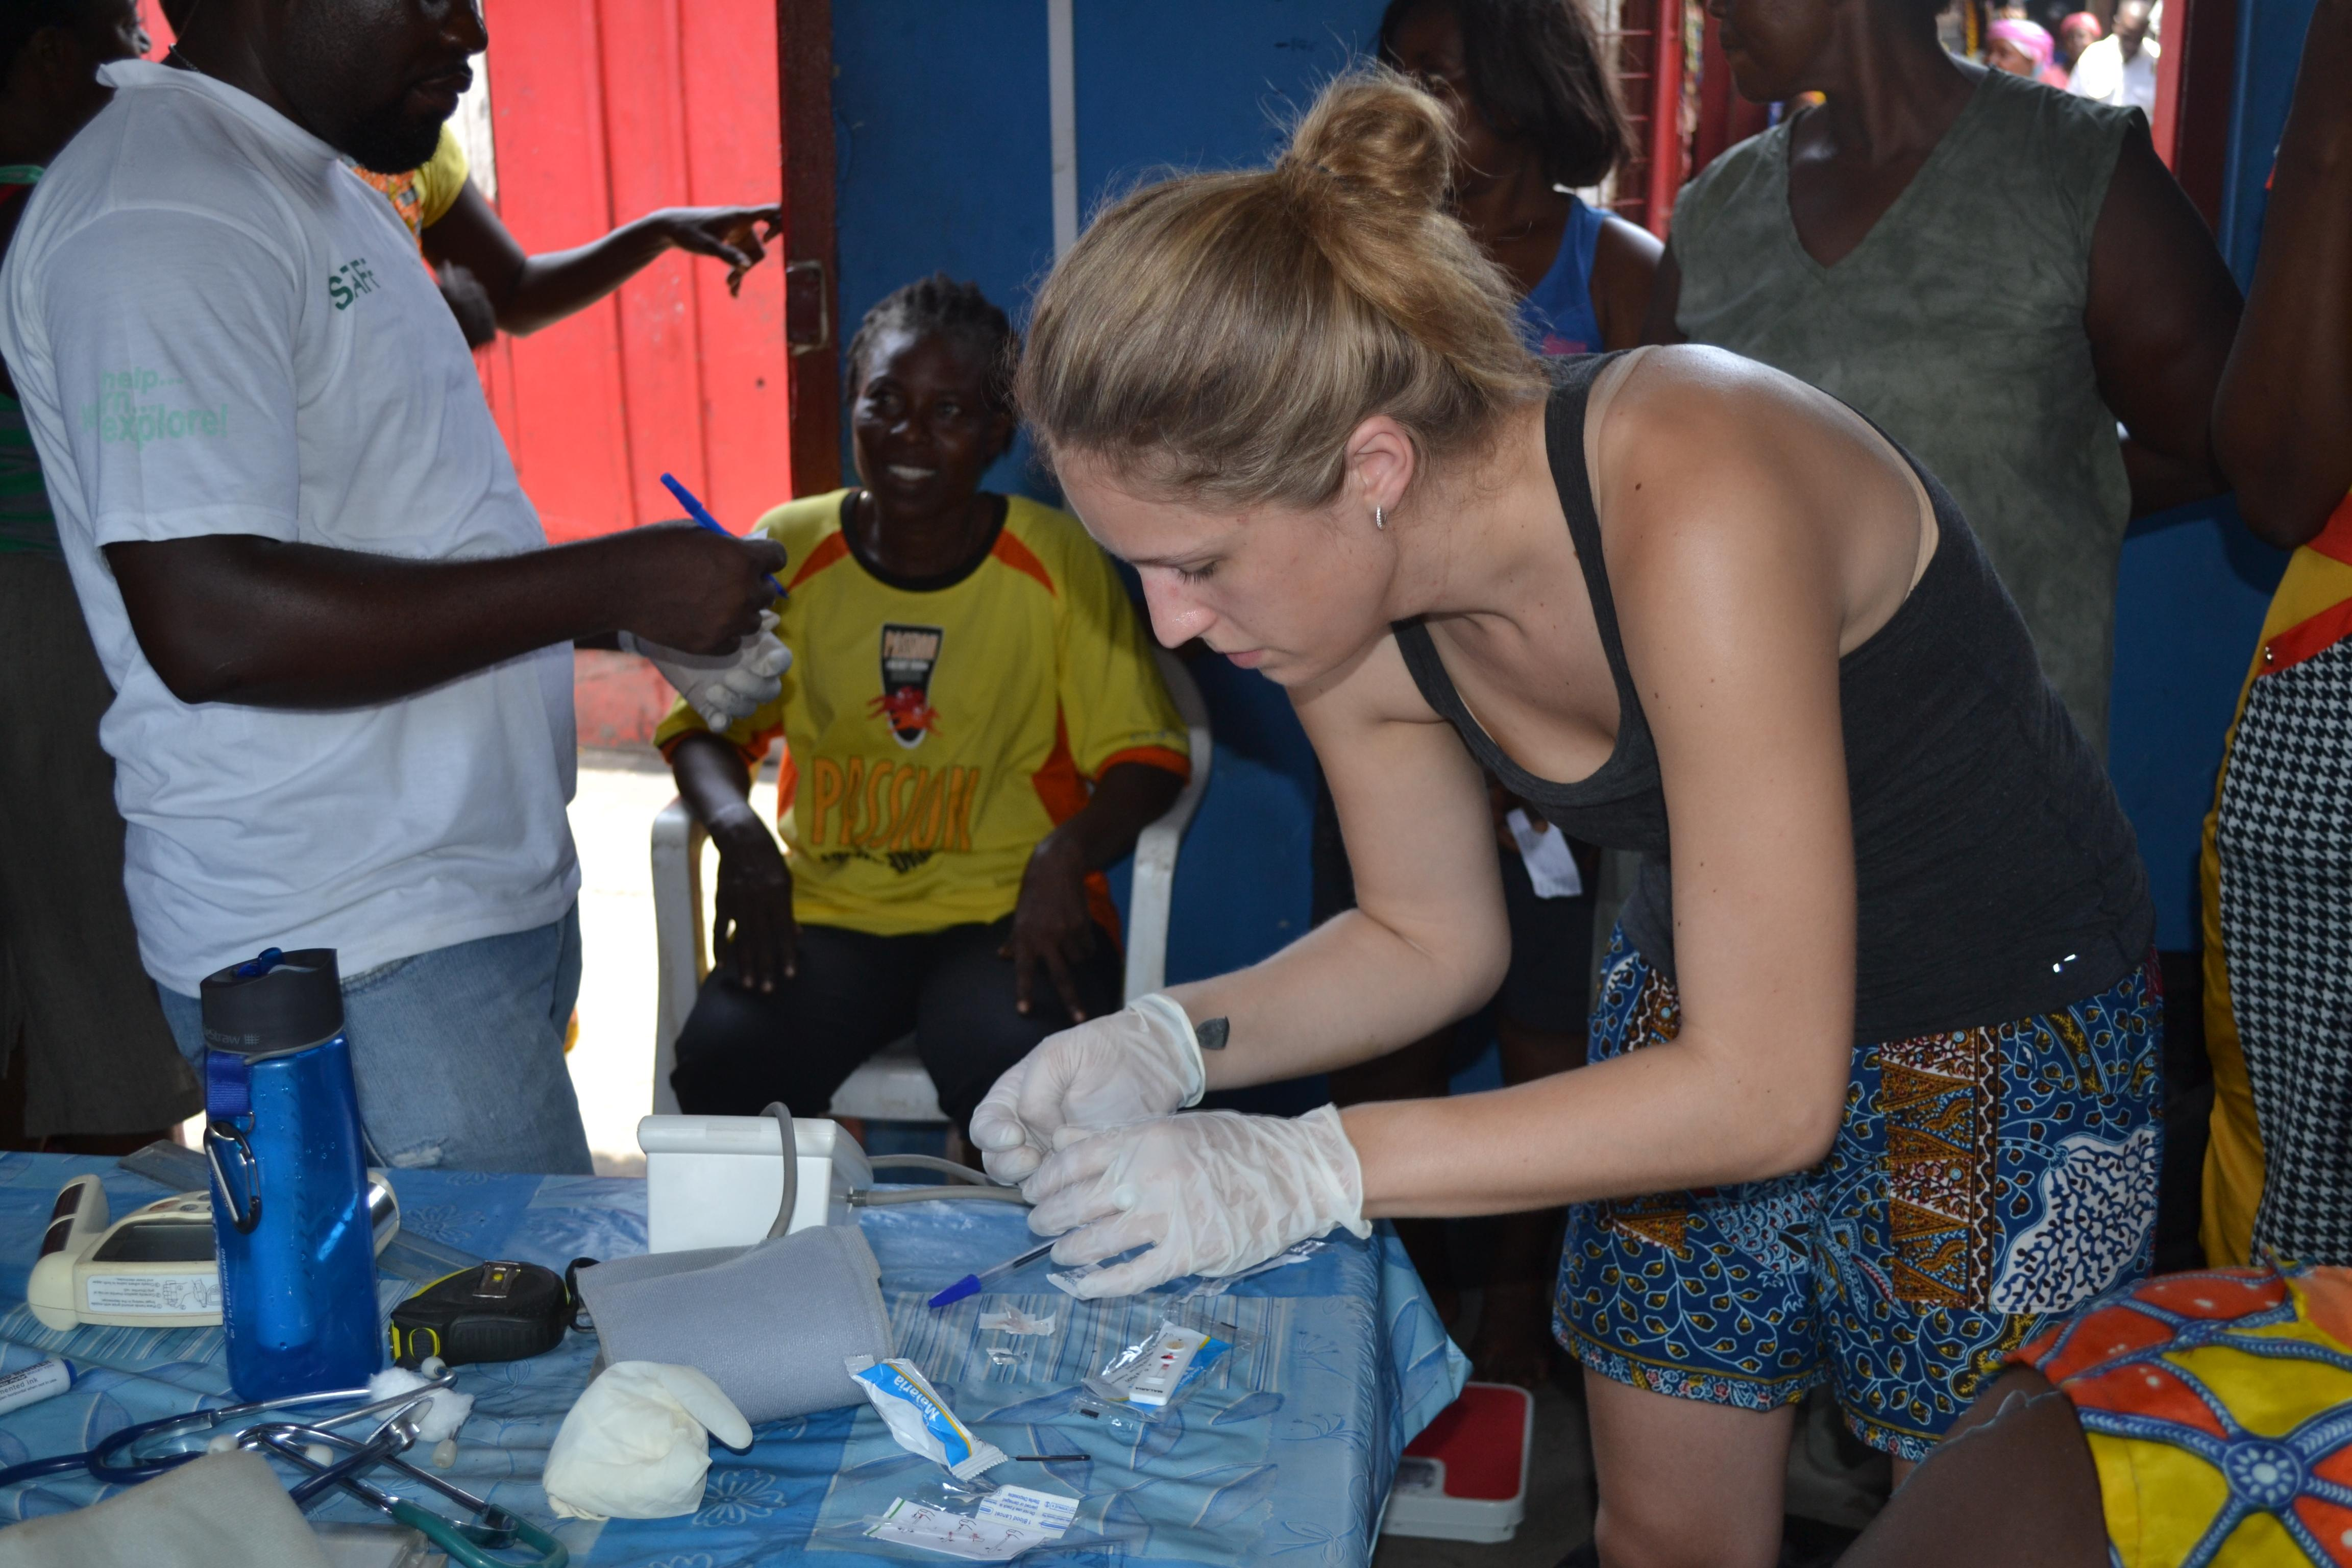 A medical outreach intern from Projects Abroad assisting in health check ups as part of her public health internship in Ghana.